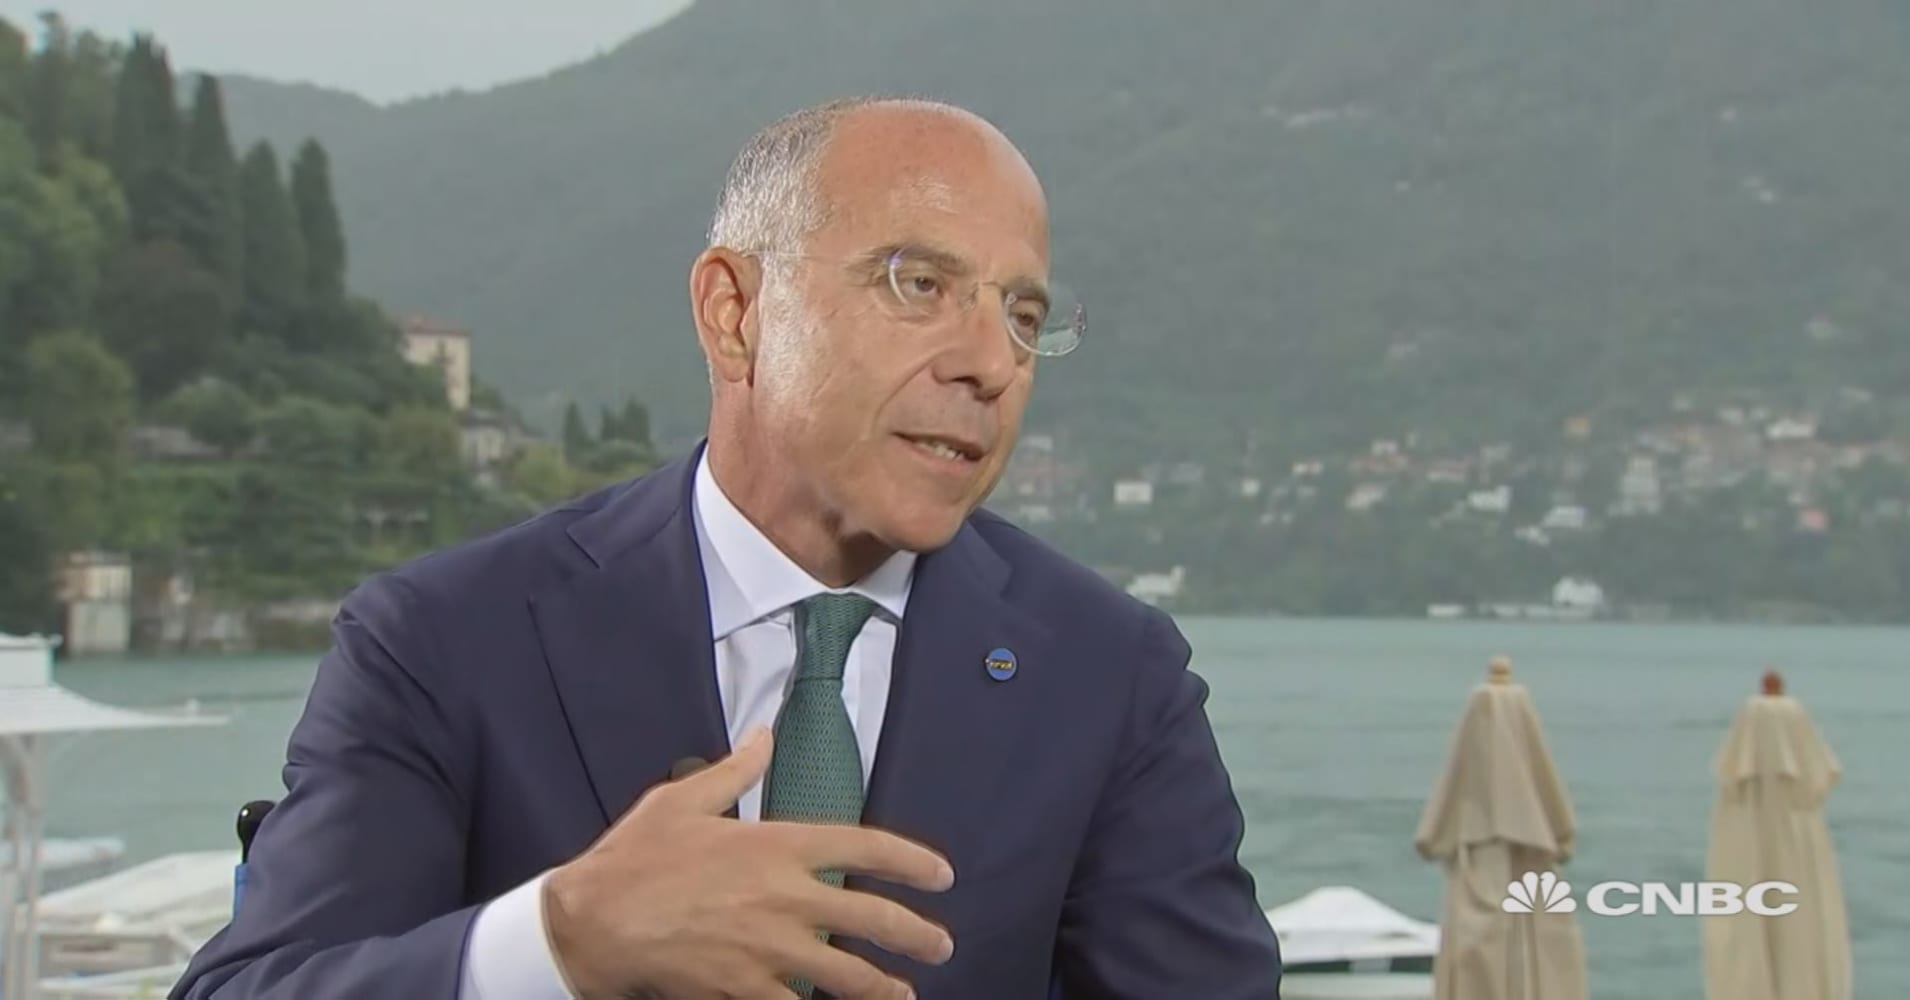 Electricity Integration Vital To Electrify Europe Says Enel CEO